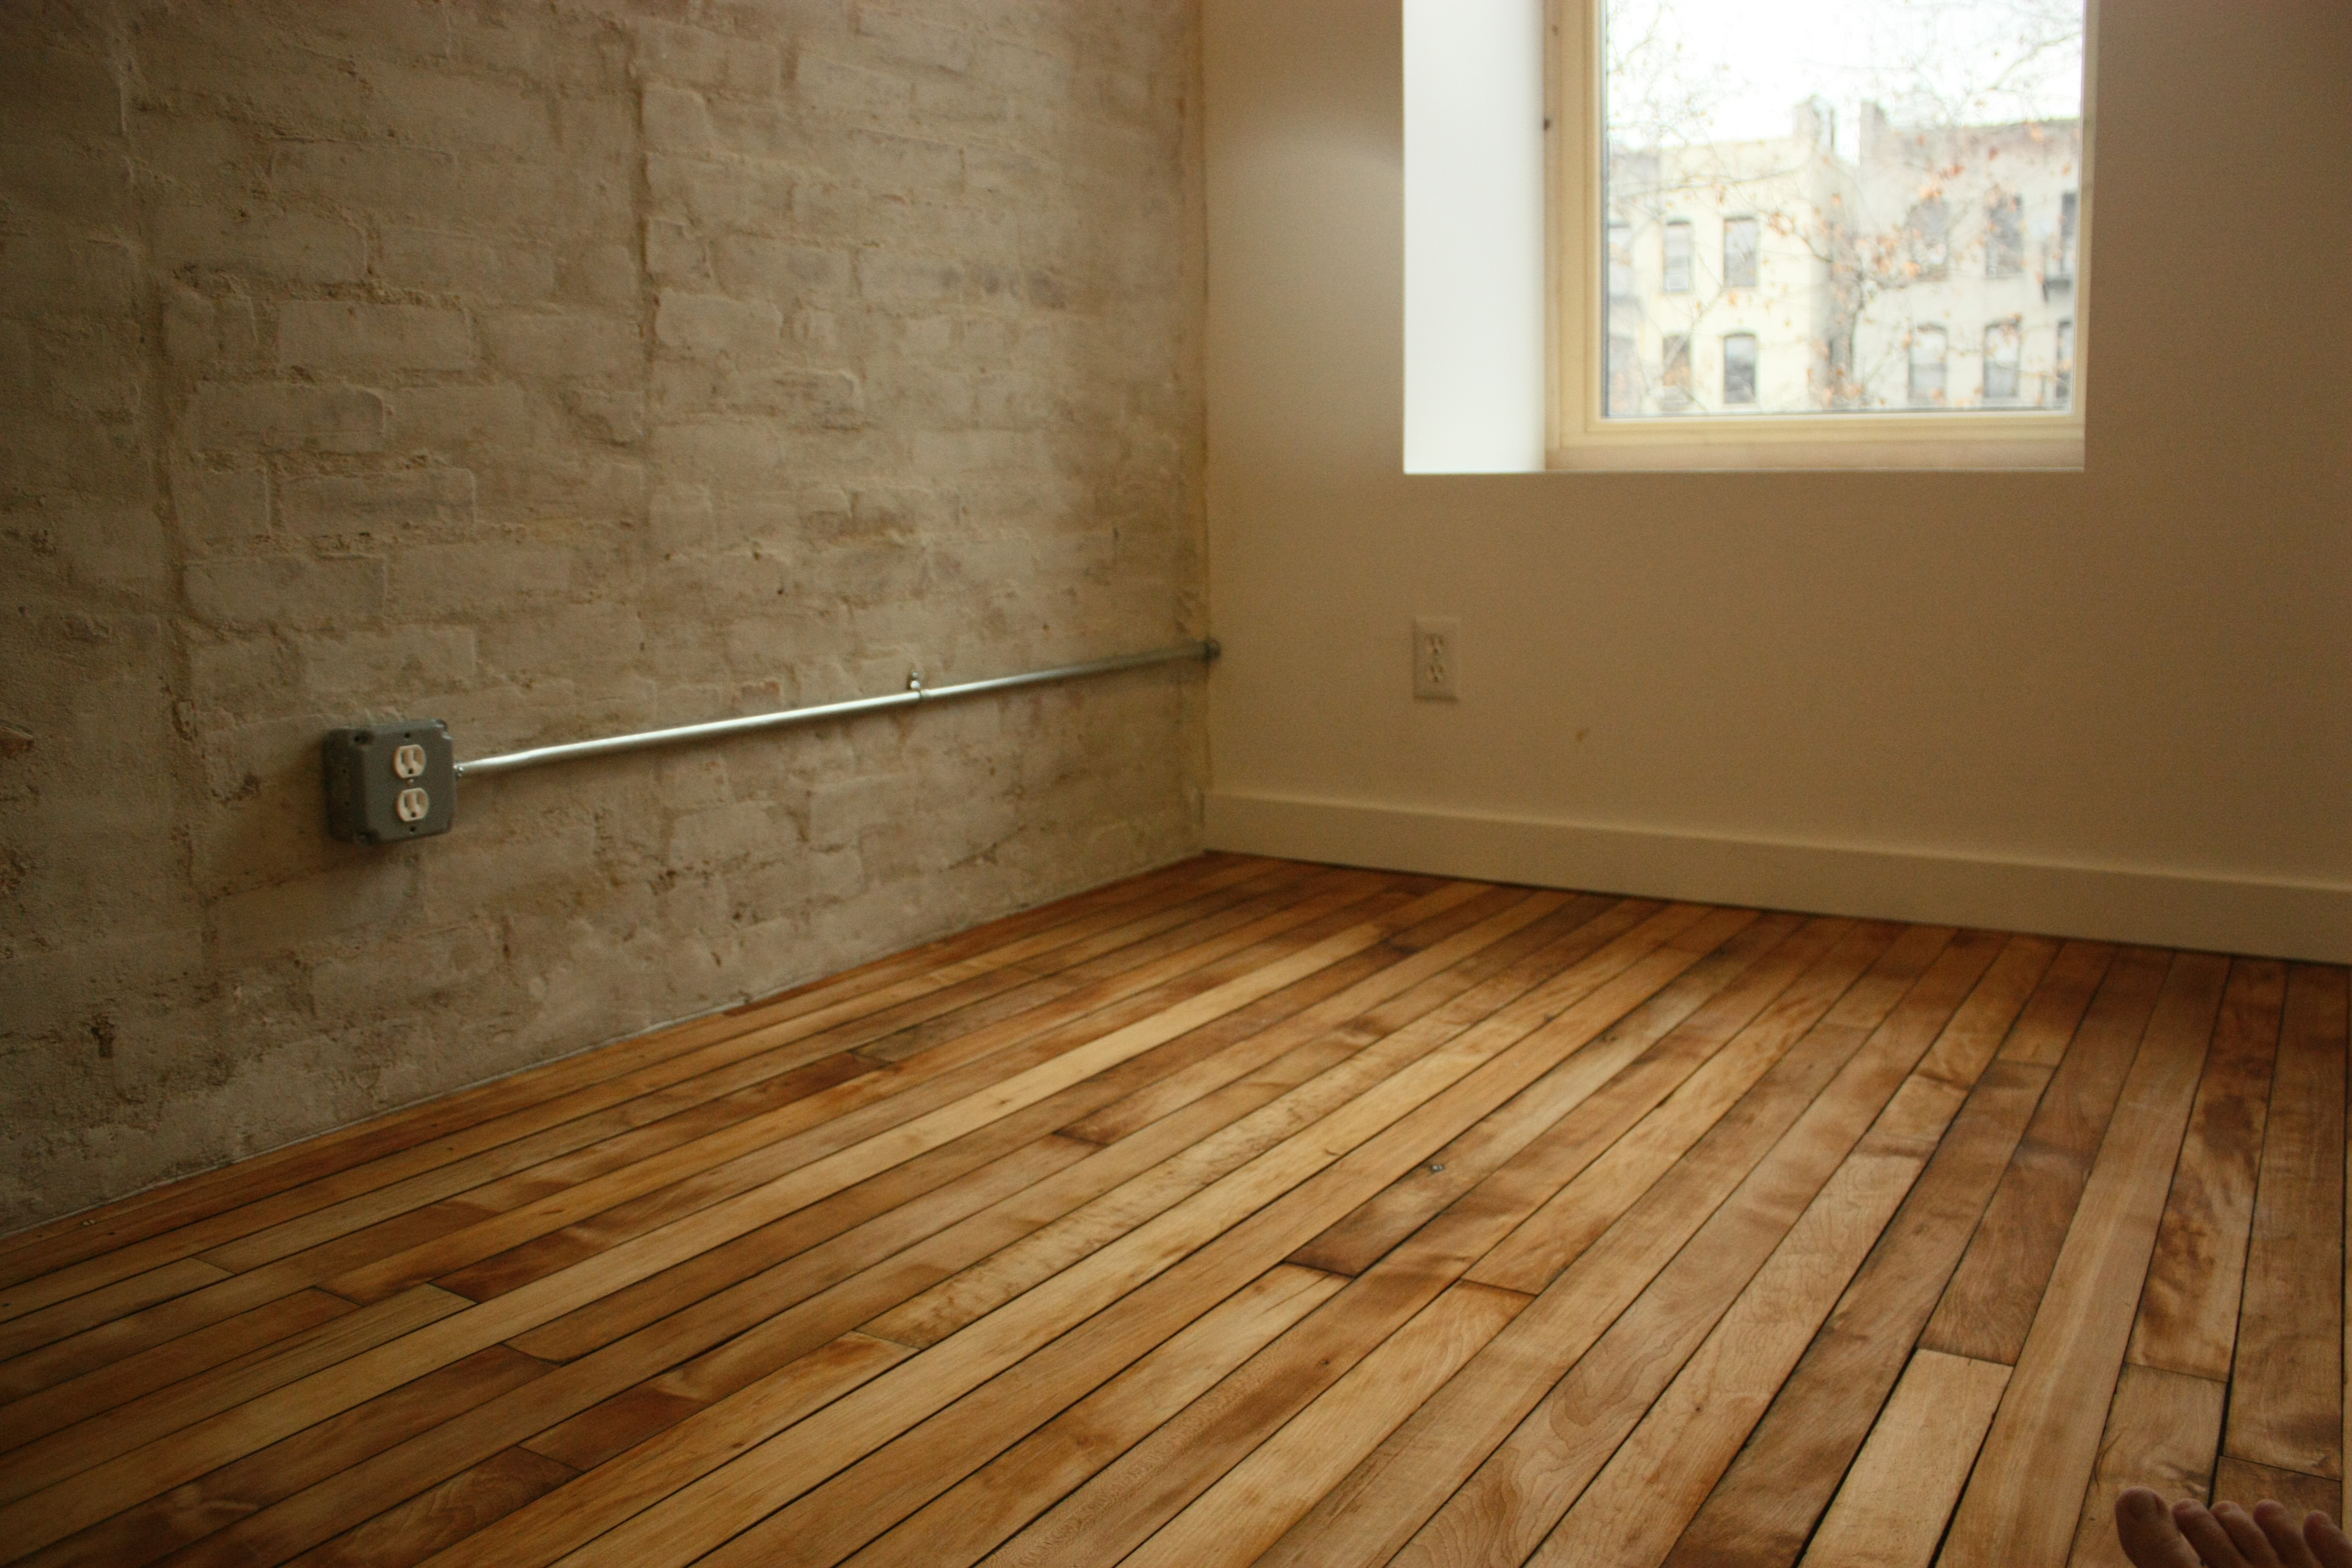 100 Year Old Maple Floorboards In Harlem